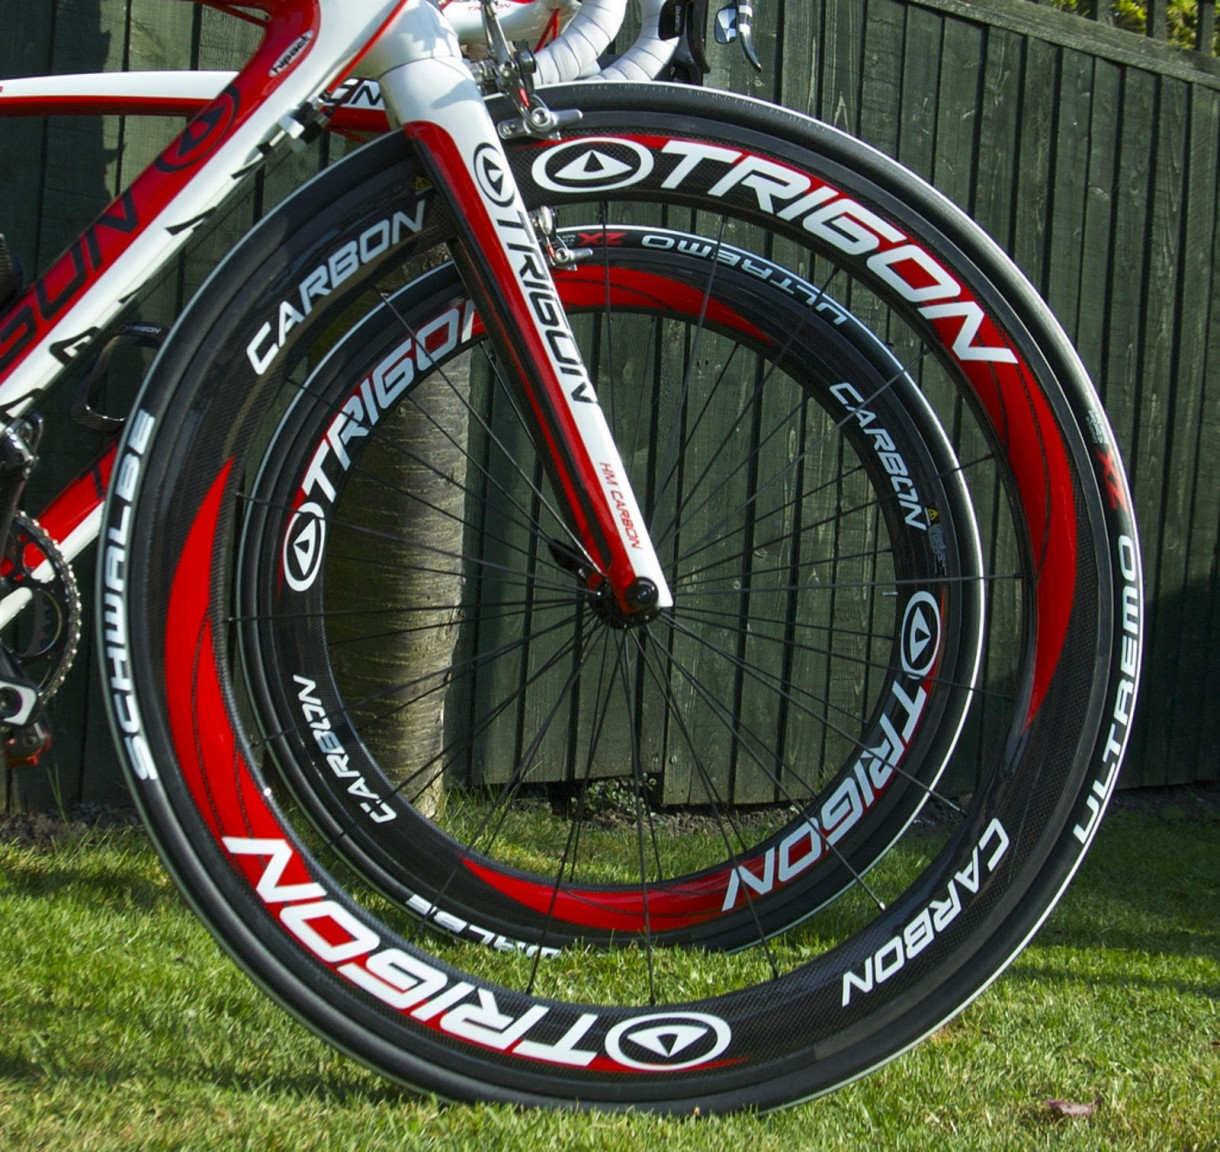 aero wheels road bike (2)